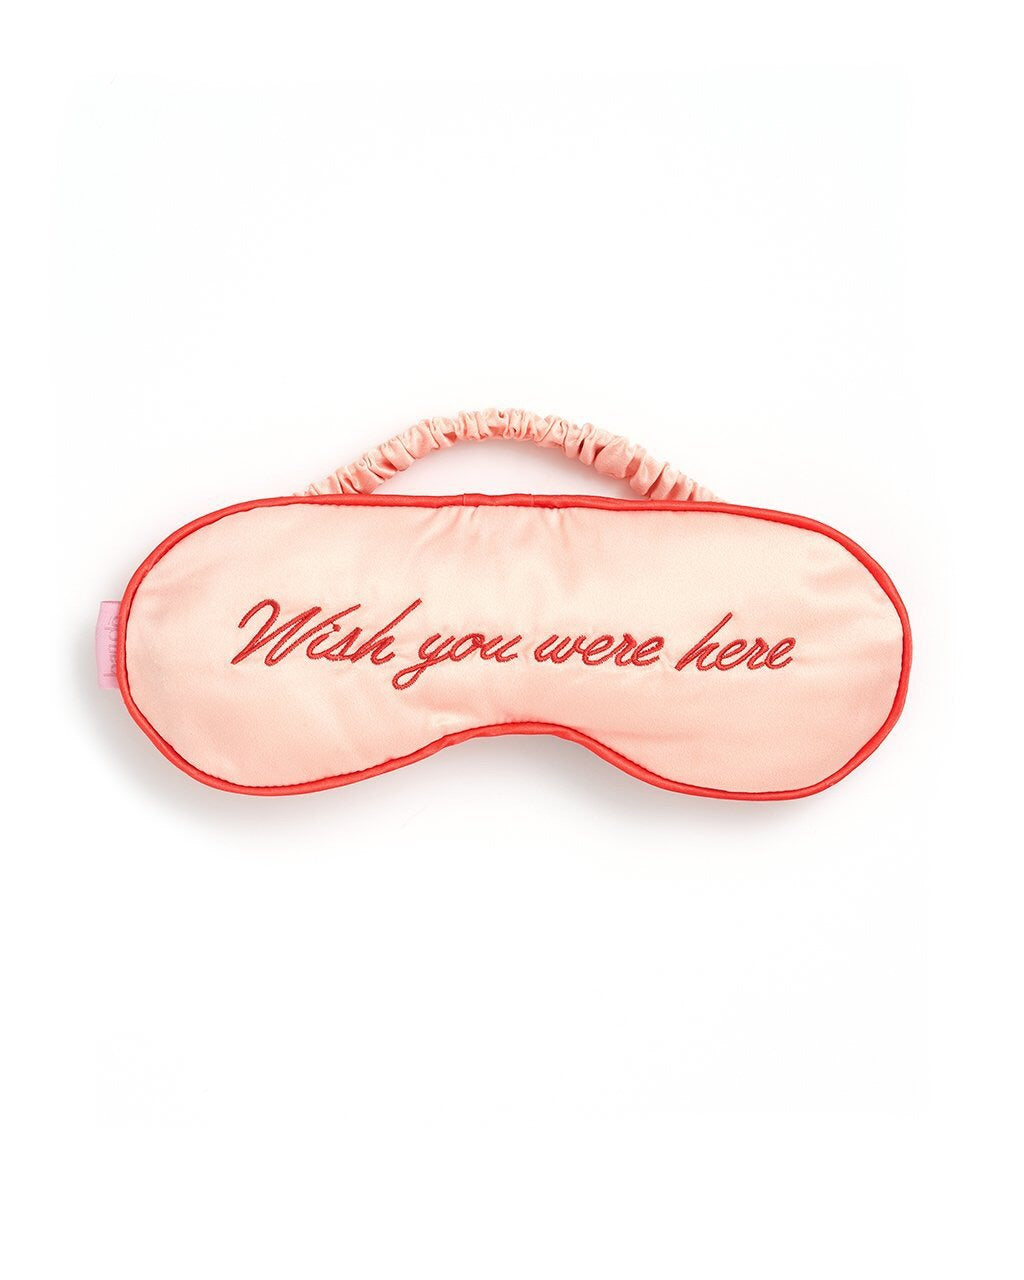 Getaway Eye Mask-Wish You Were Here